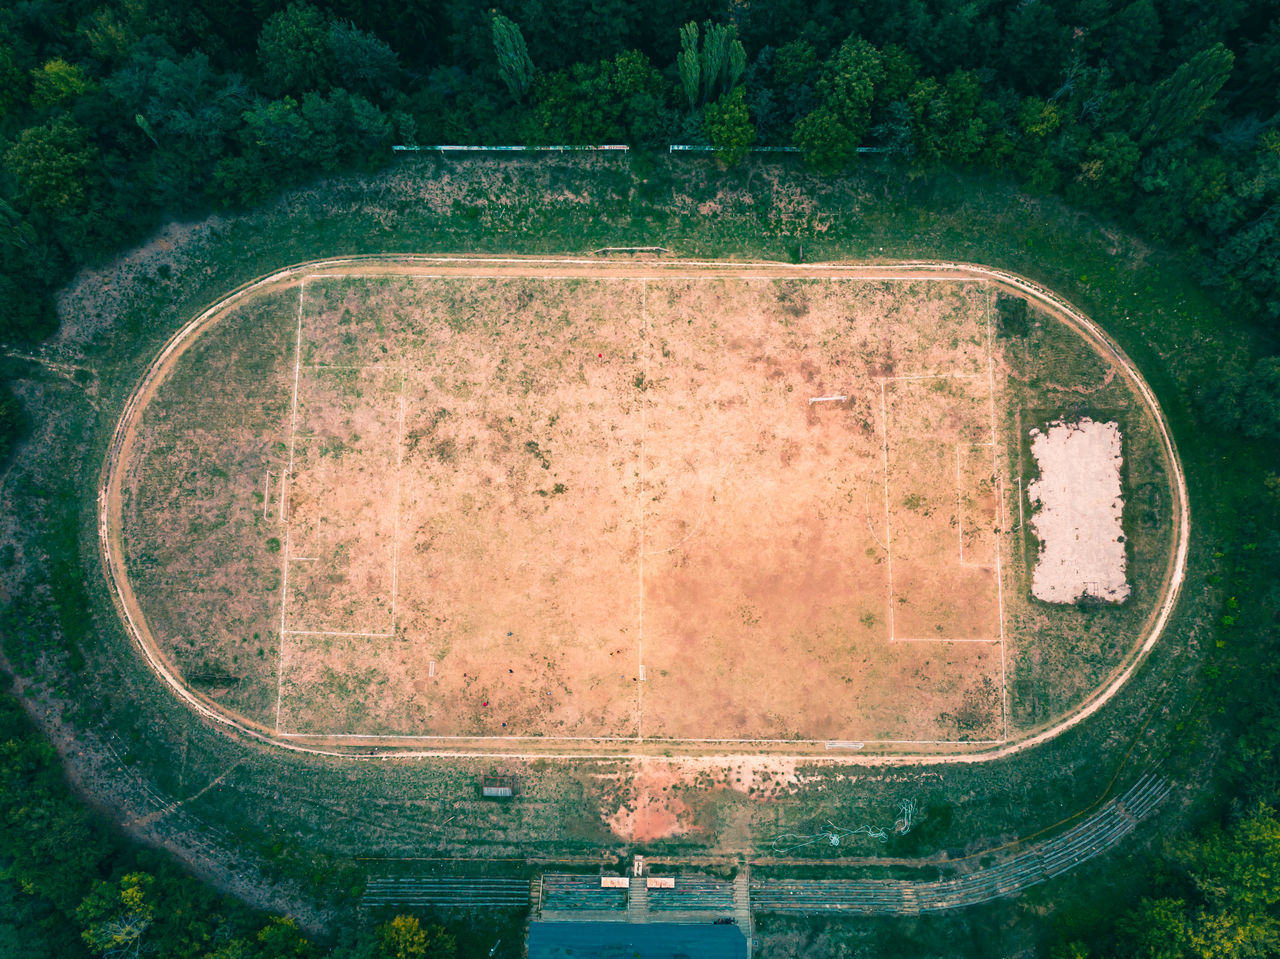 HIGH ANGLE VIEW OF TIRE ON FIELD